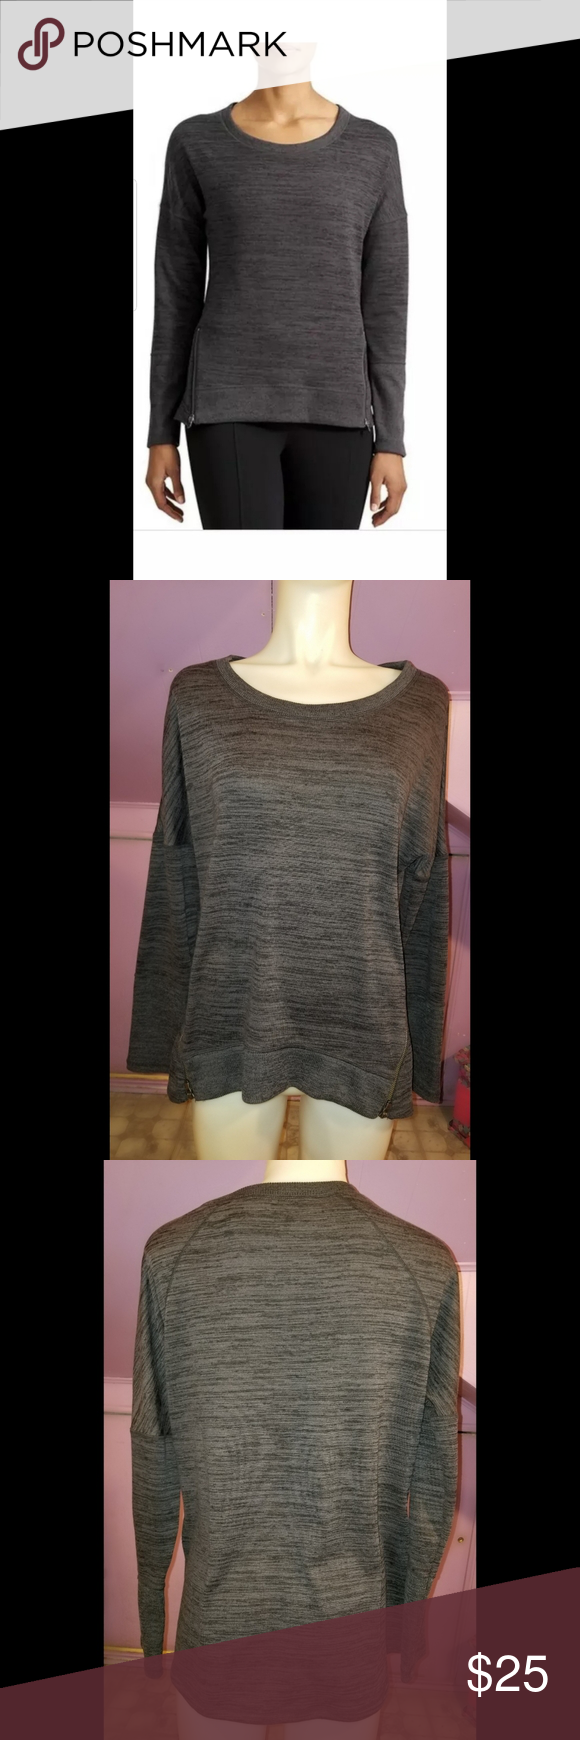 Athleta Blissful Sharkbite Side Zip  Sweatshirt Athleta Size large Blissful Sharkbite Side Zip Heather Gray Sweatshirt Scoop neck. Gently use with no flaws. Athleta Sweaters #myposhpicks